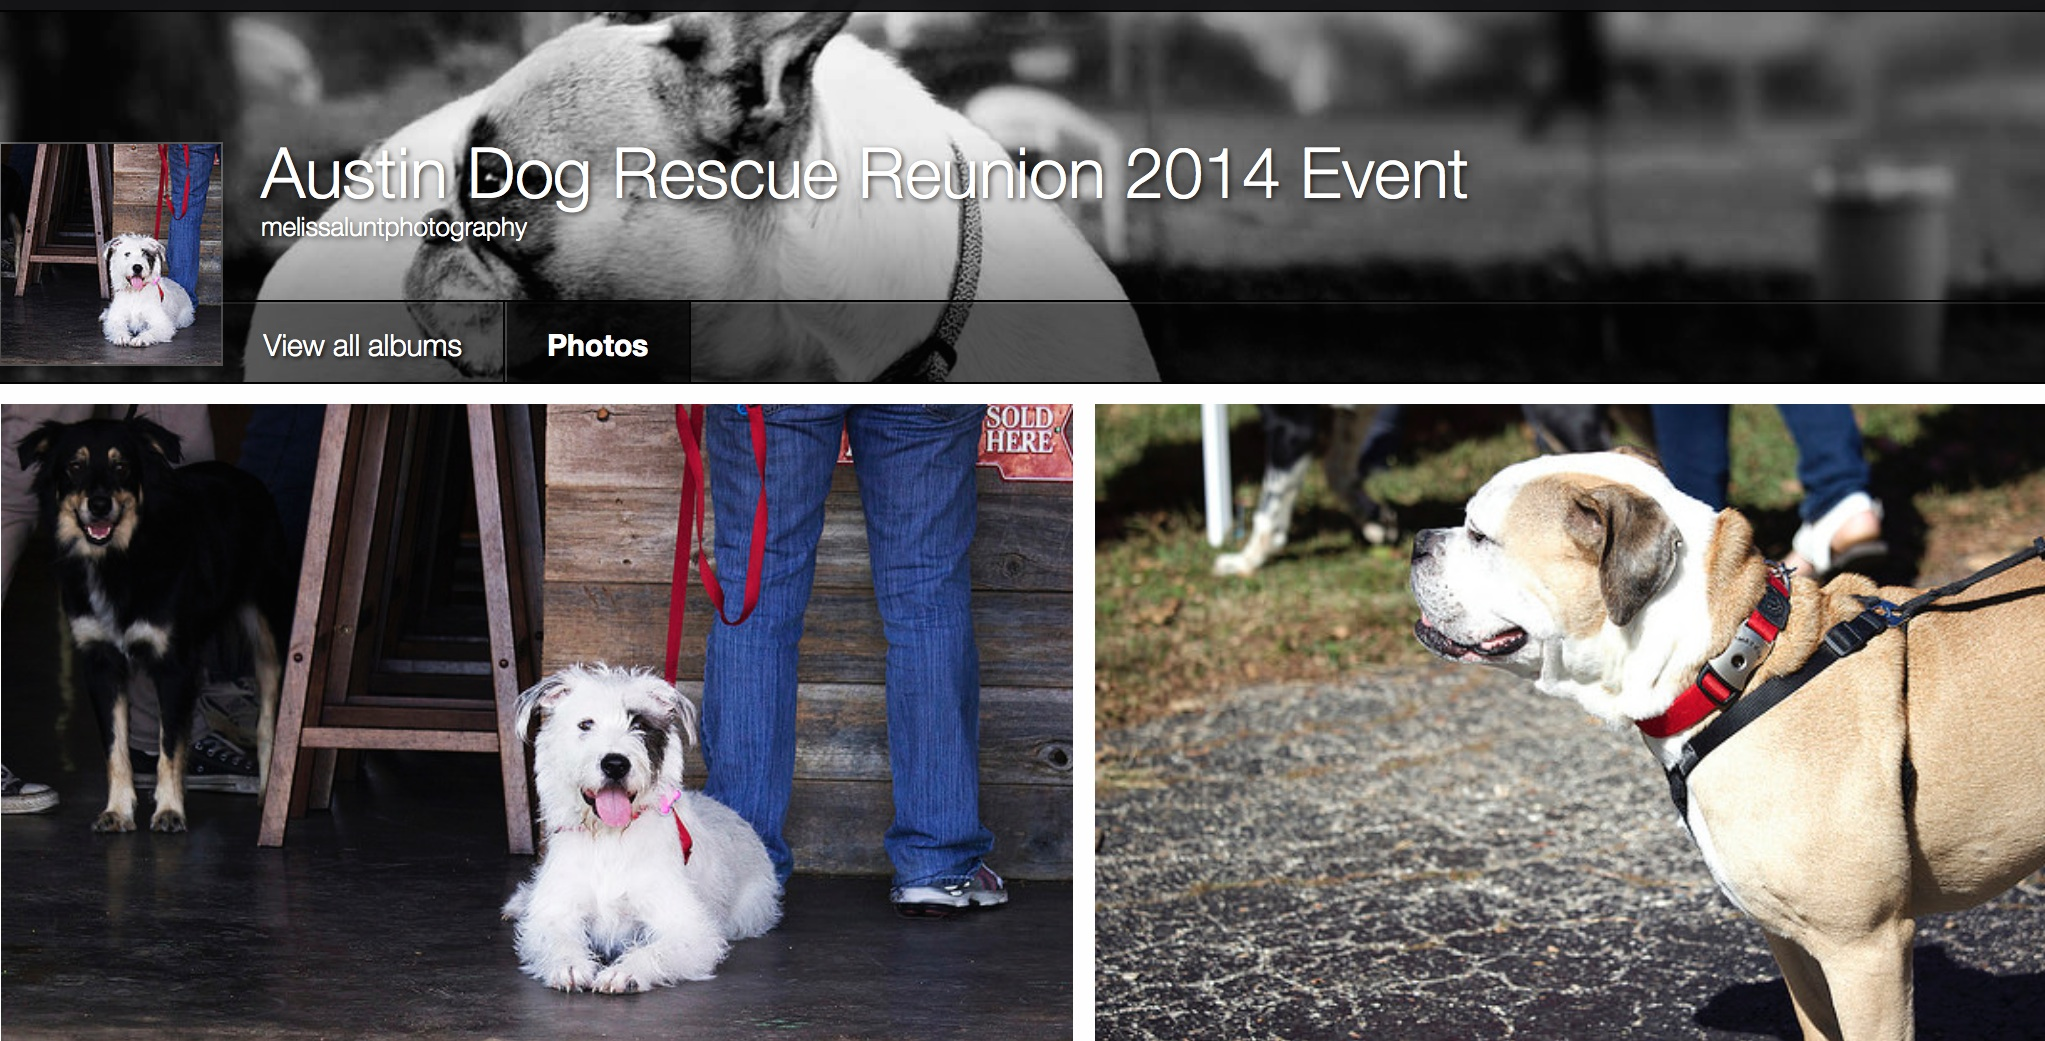 Special day for the Dog House....Austin Dog Rescue Reunion.  See pictures from the event: https://www.flickr.com/photos/128344095@N02/sets/72157646881356993/